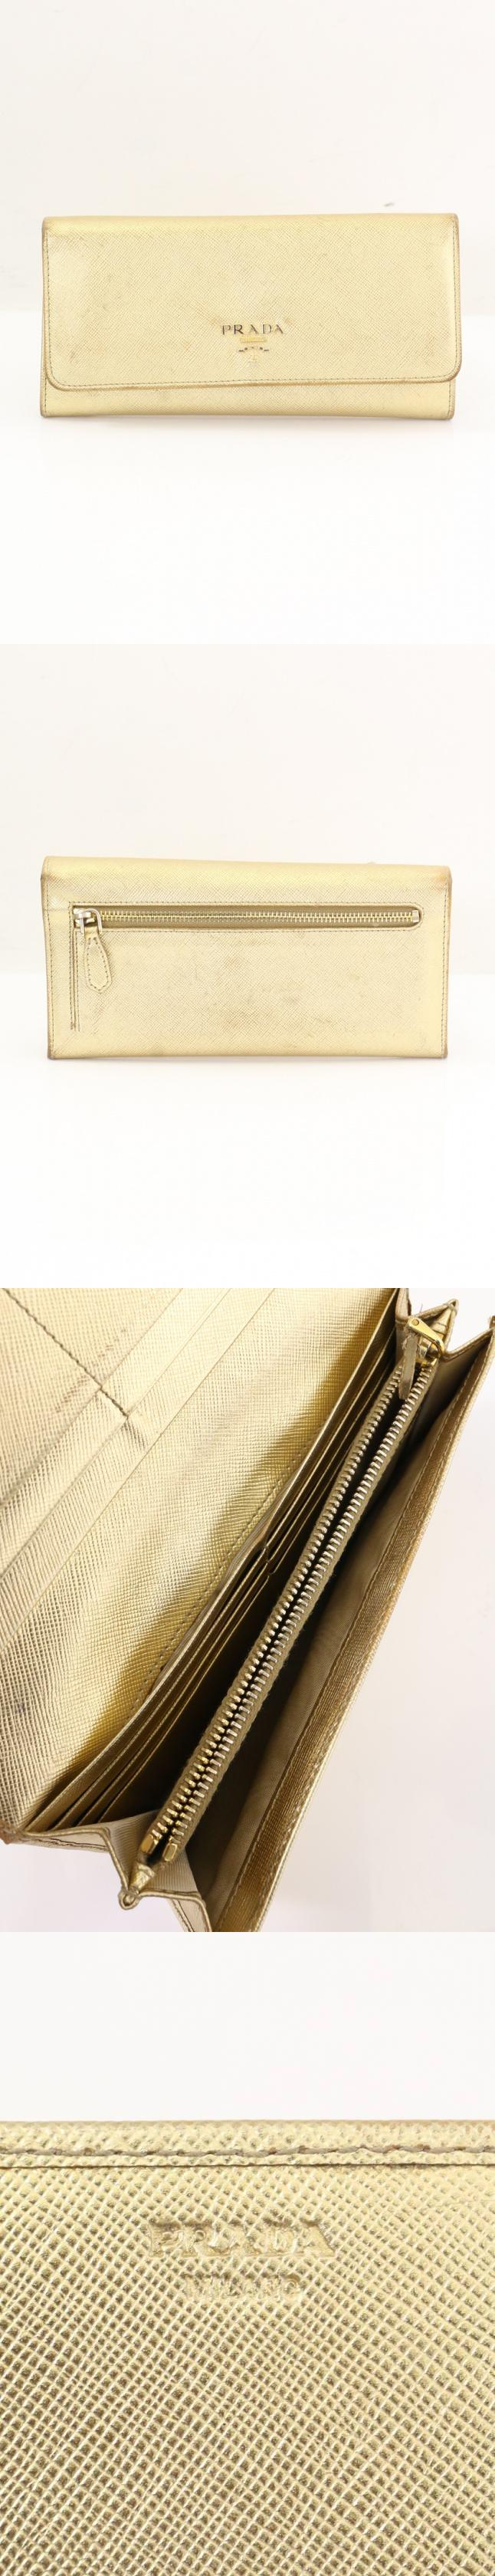 b37f4778be73 Prada PRADA folding in half long wallet gold small articles safia-no ...